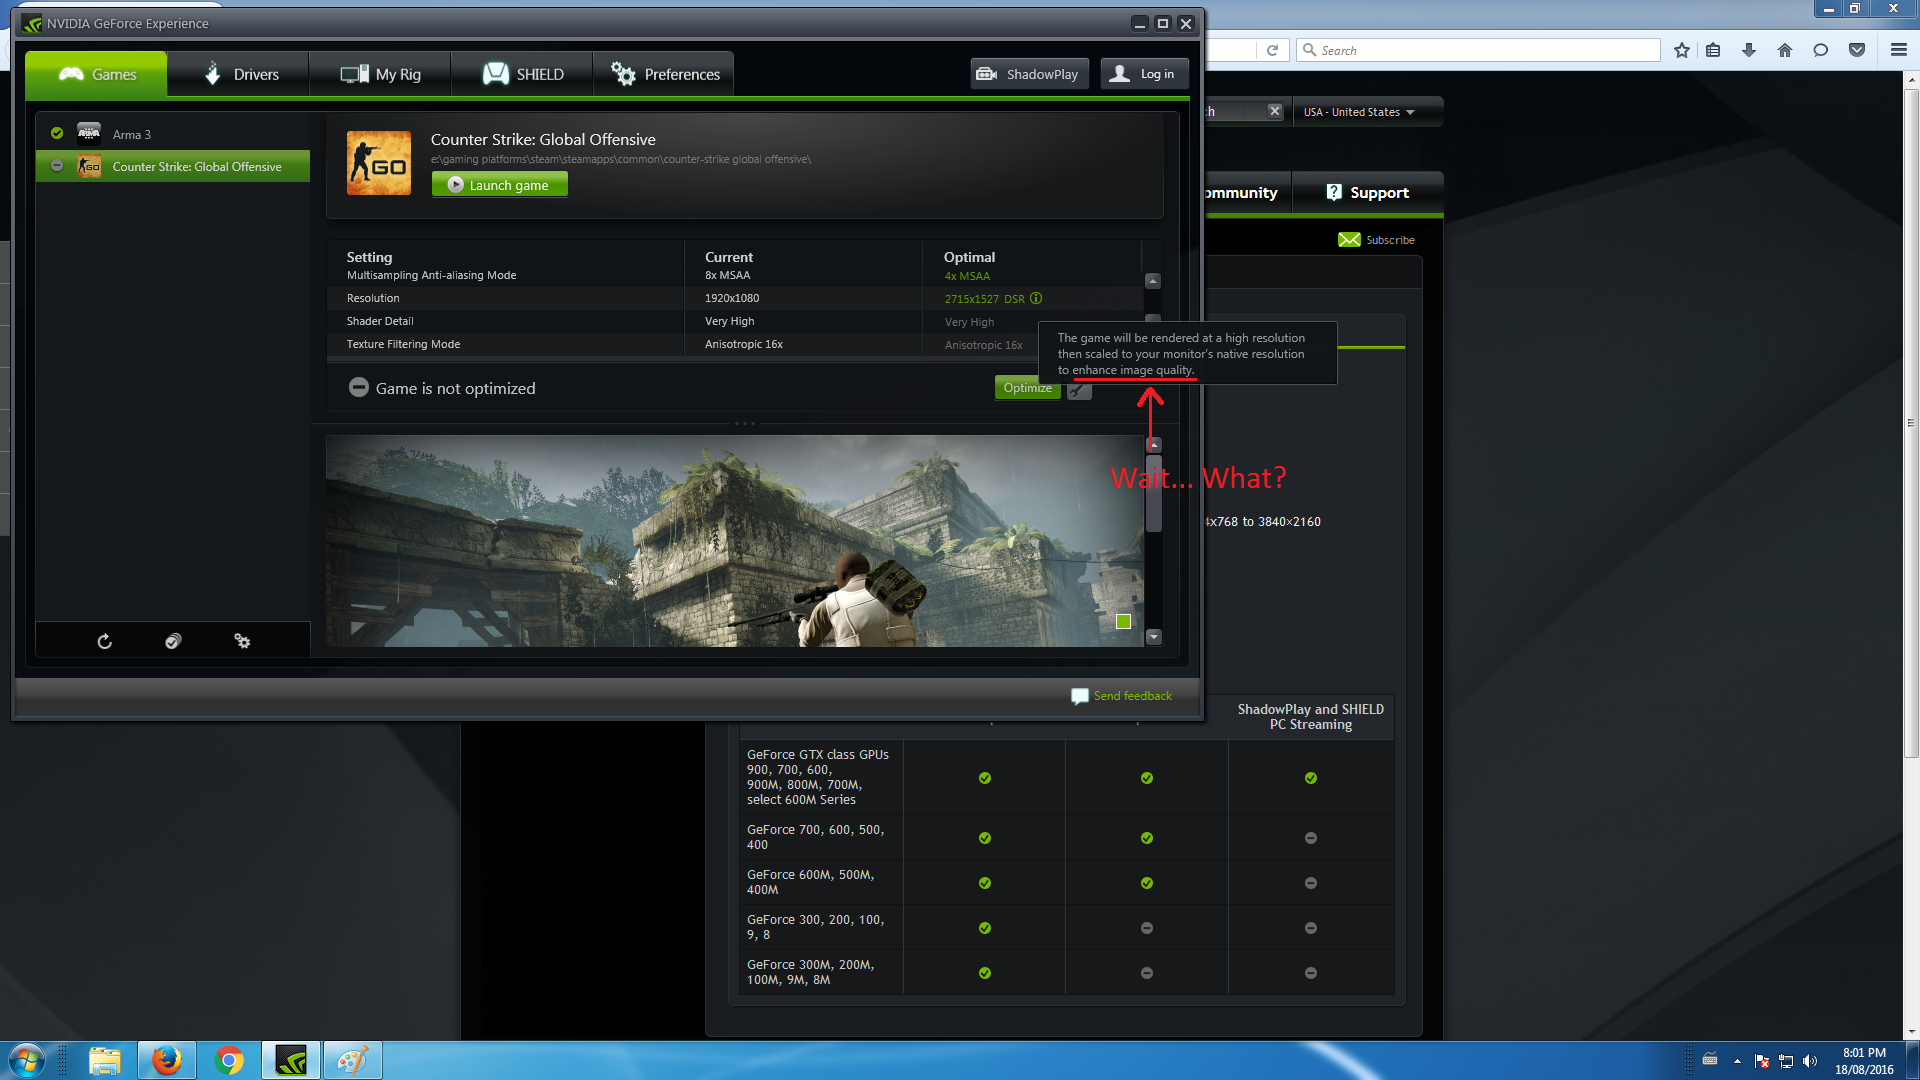 CSGO 'optimization' setting on NVIDIA Experience MSI GTX1070